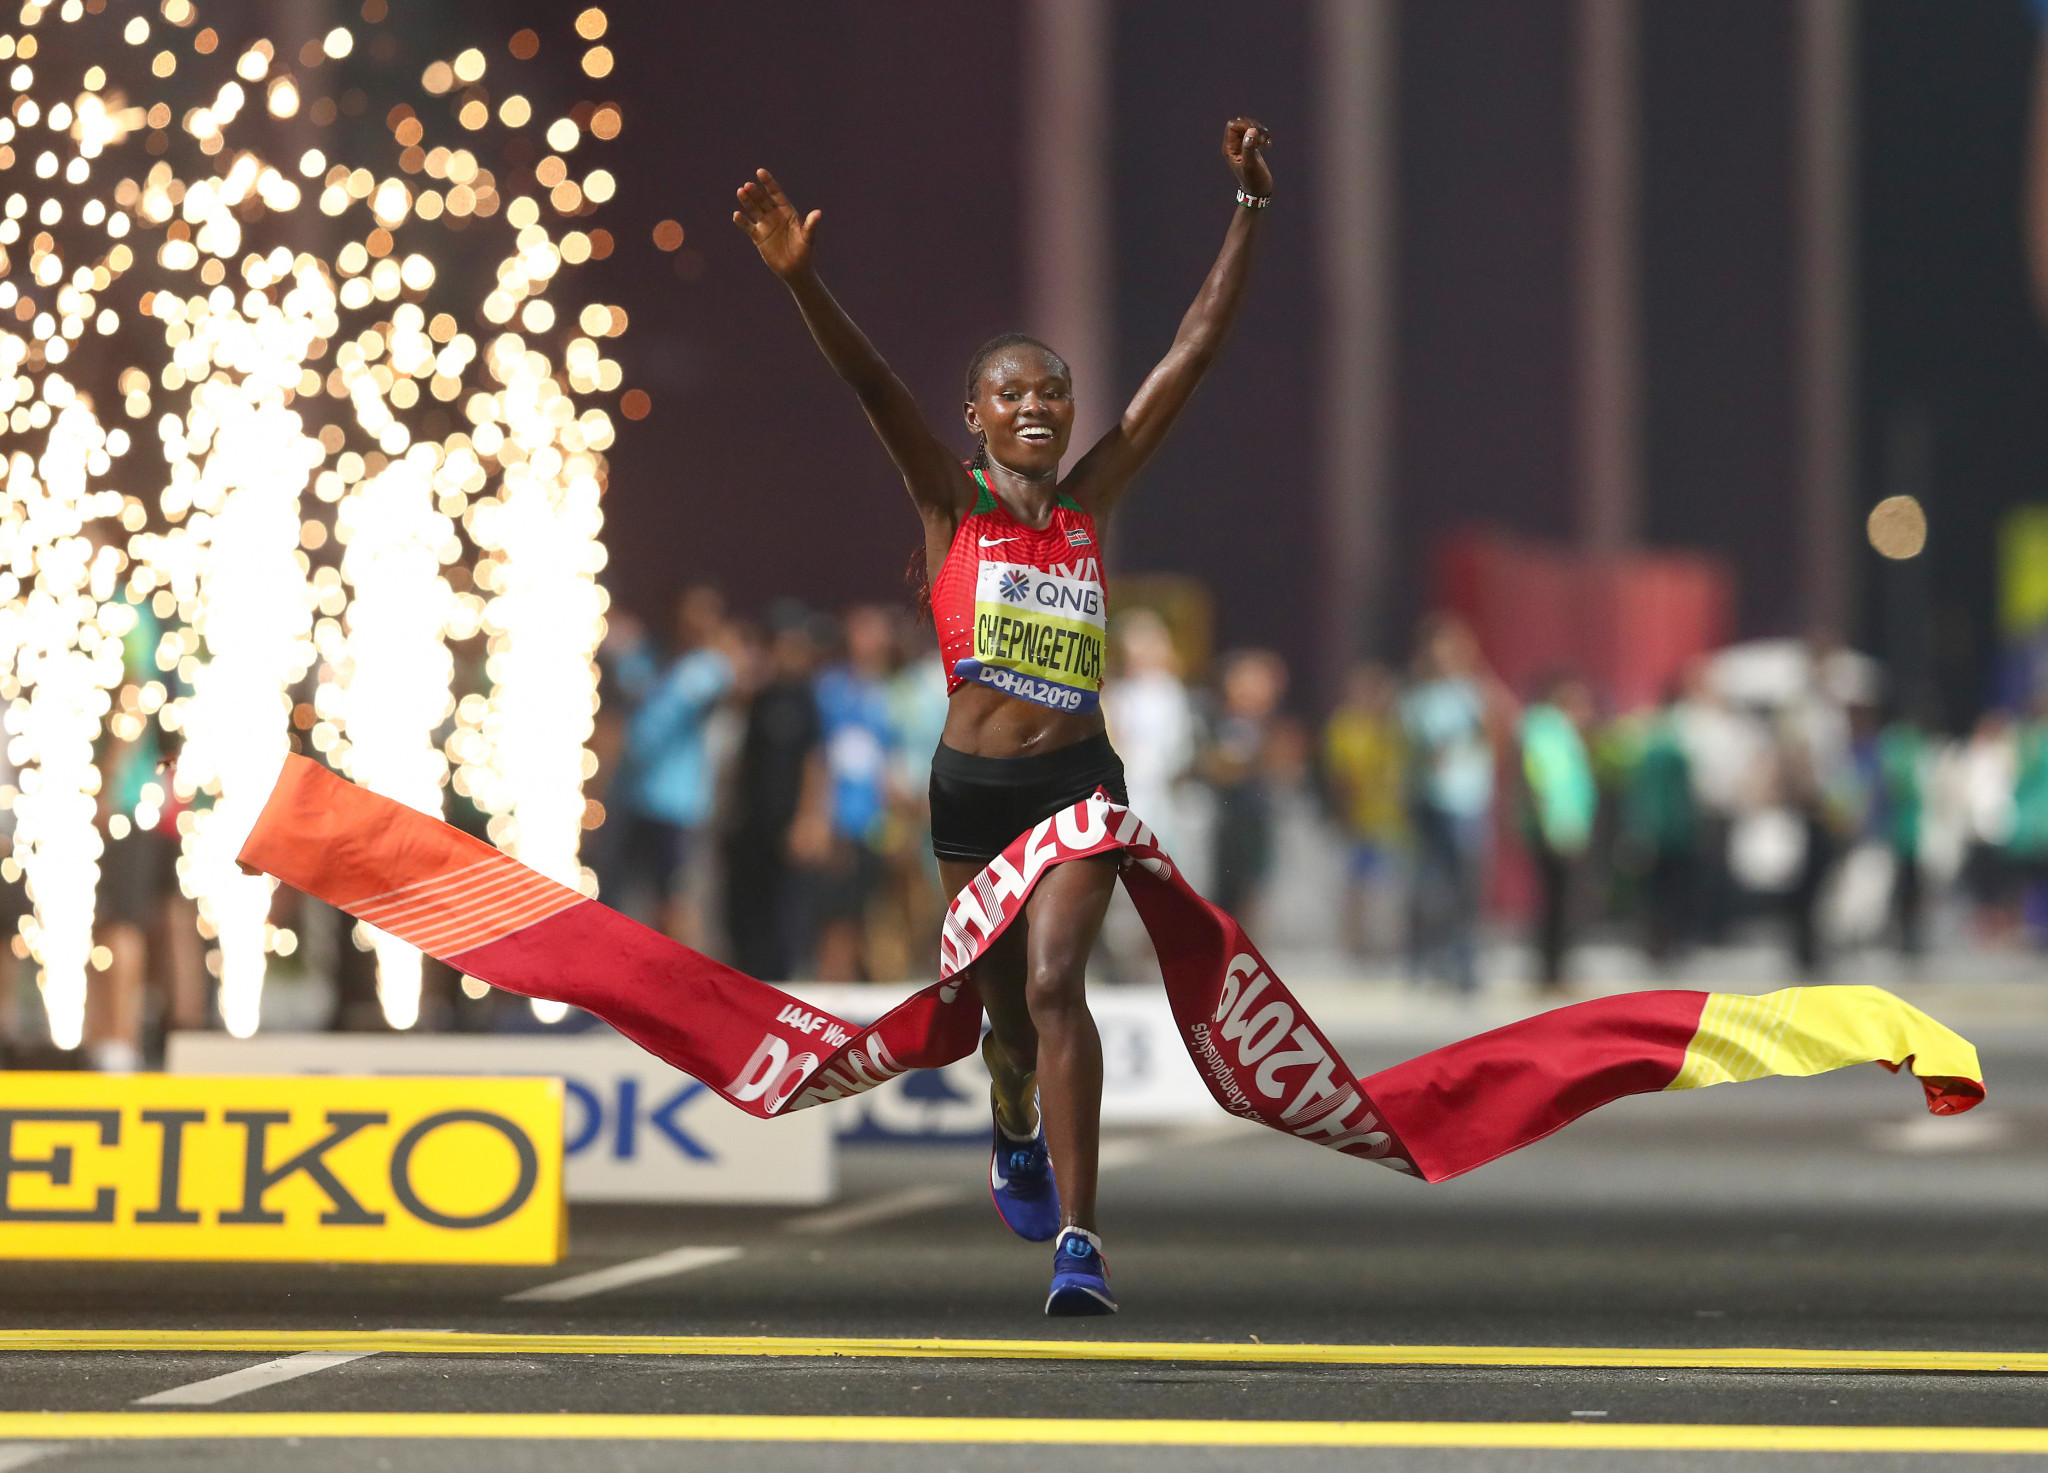 Gold for Chepngetich in Doha as 28 drop out of women's marathon due to stifling heat